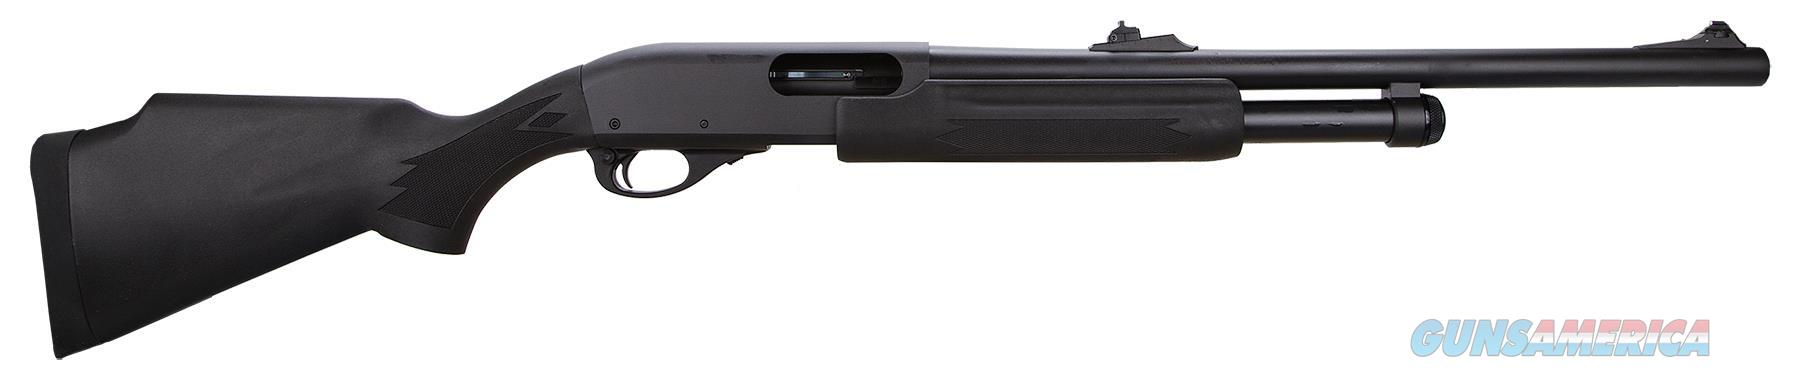 REMINGTON 870 EXP DEER 12/20 BLK 25097  Guns > Shotguns > Remington Shotguns  > Pump > Hunting